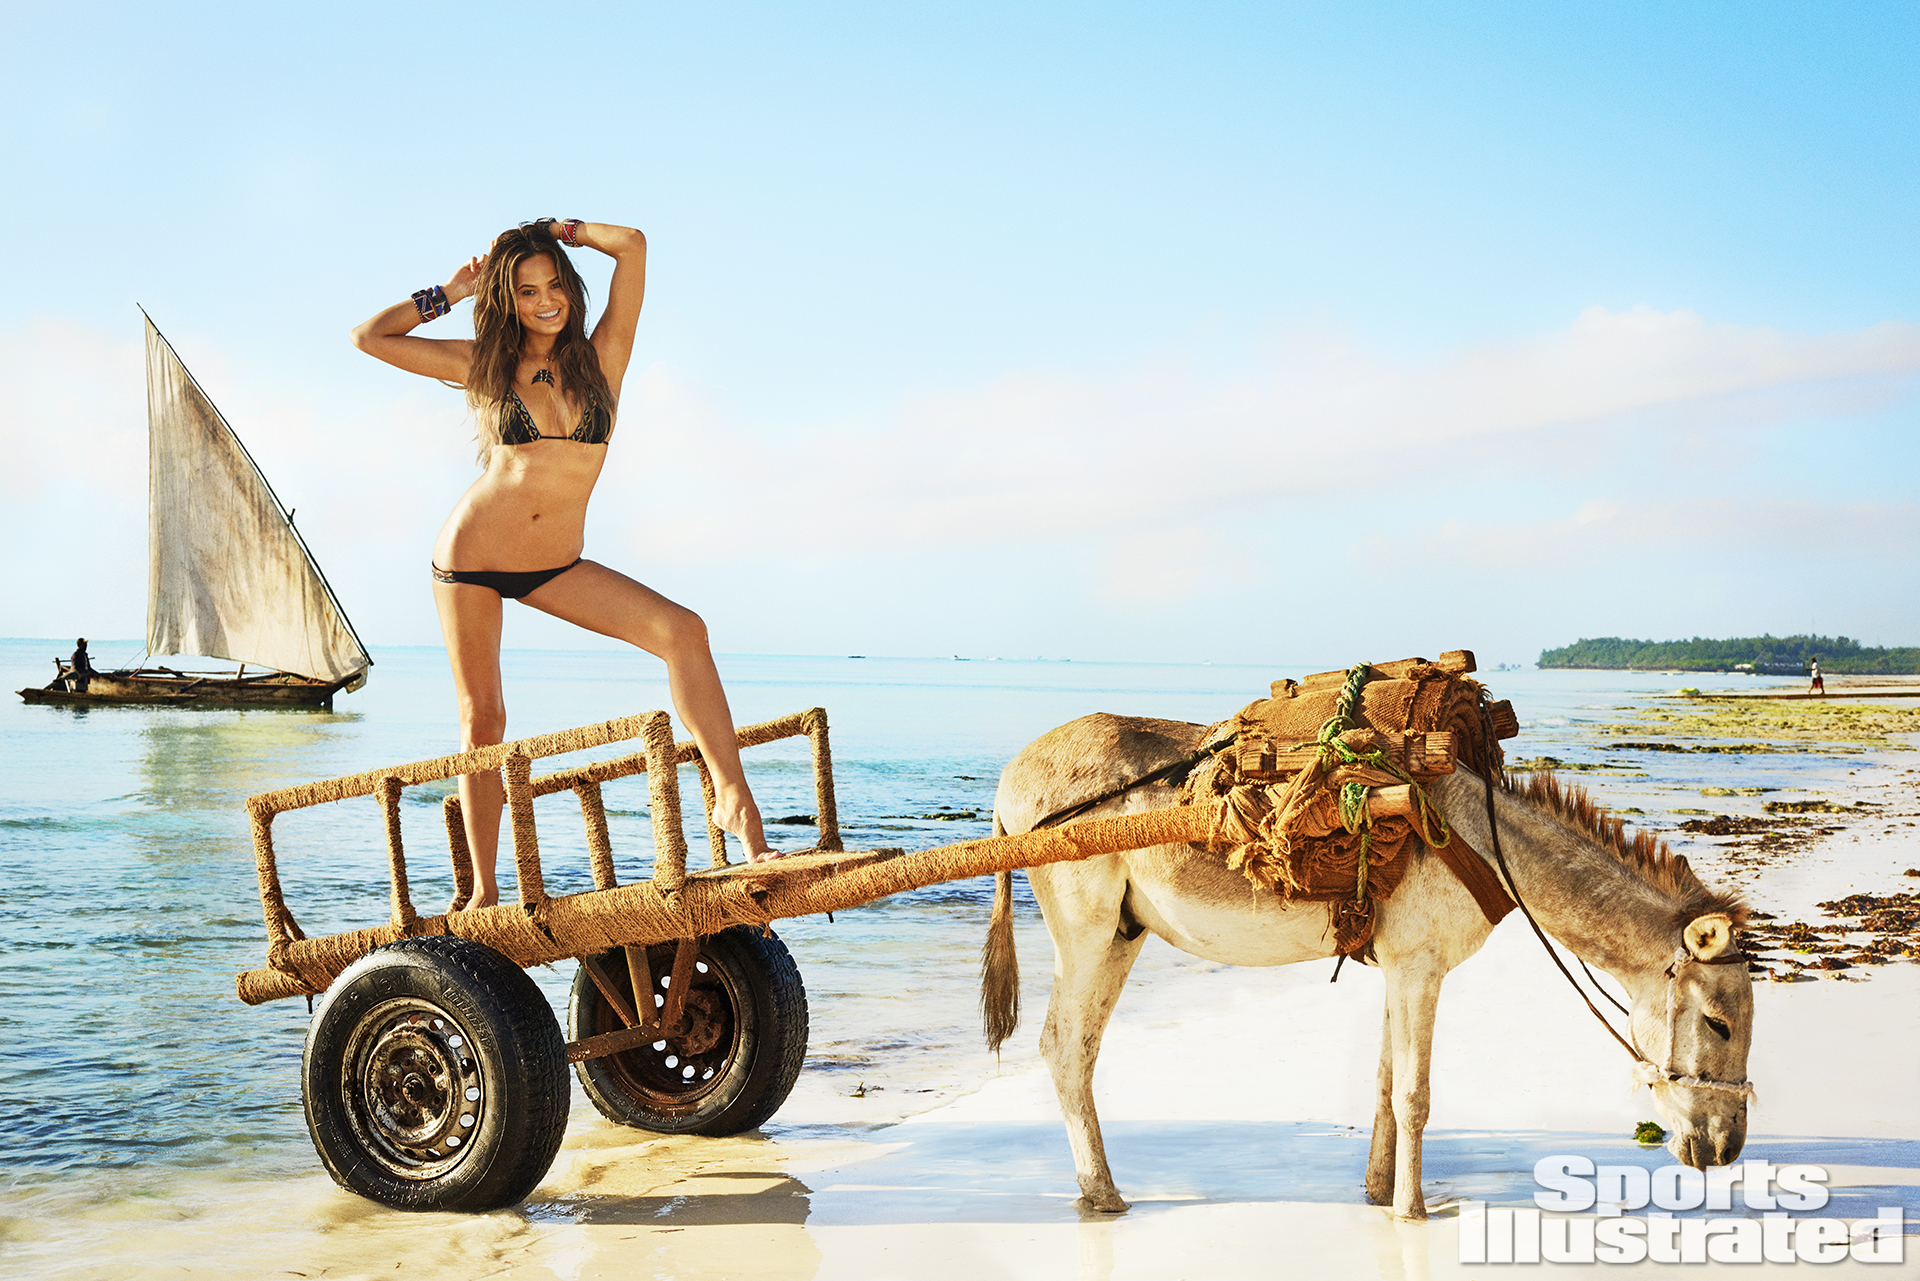 Chrissy Teigen was photographed by Ruven Afanador in Zanzibar. Swimsuit by L*SPACE By Monica Wise.